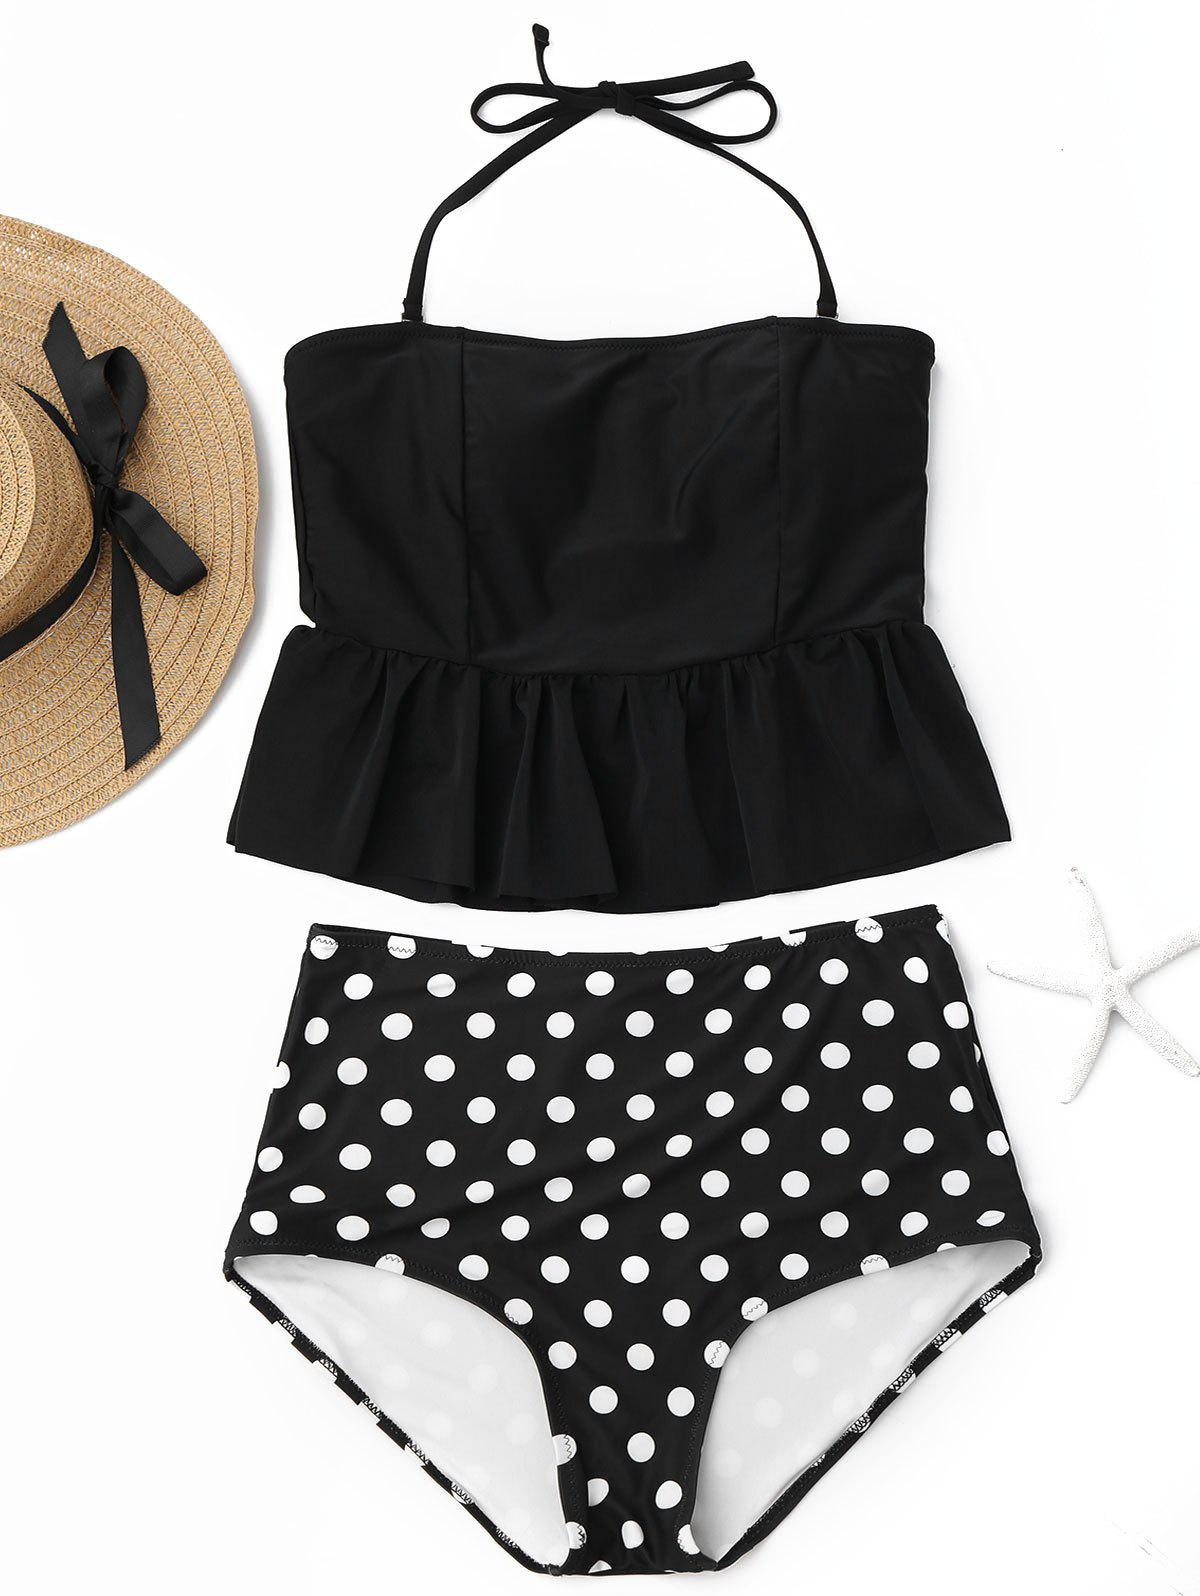 Chic Peplum High Waisted Polka Dot Tankini Set